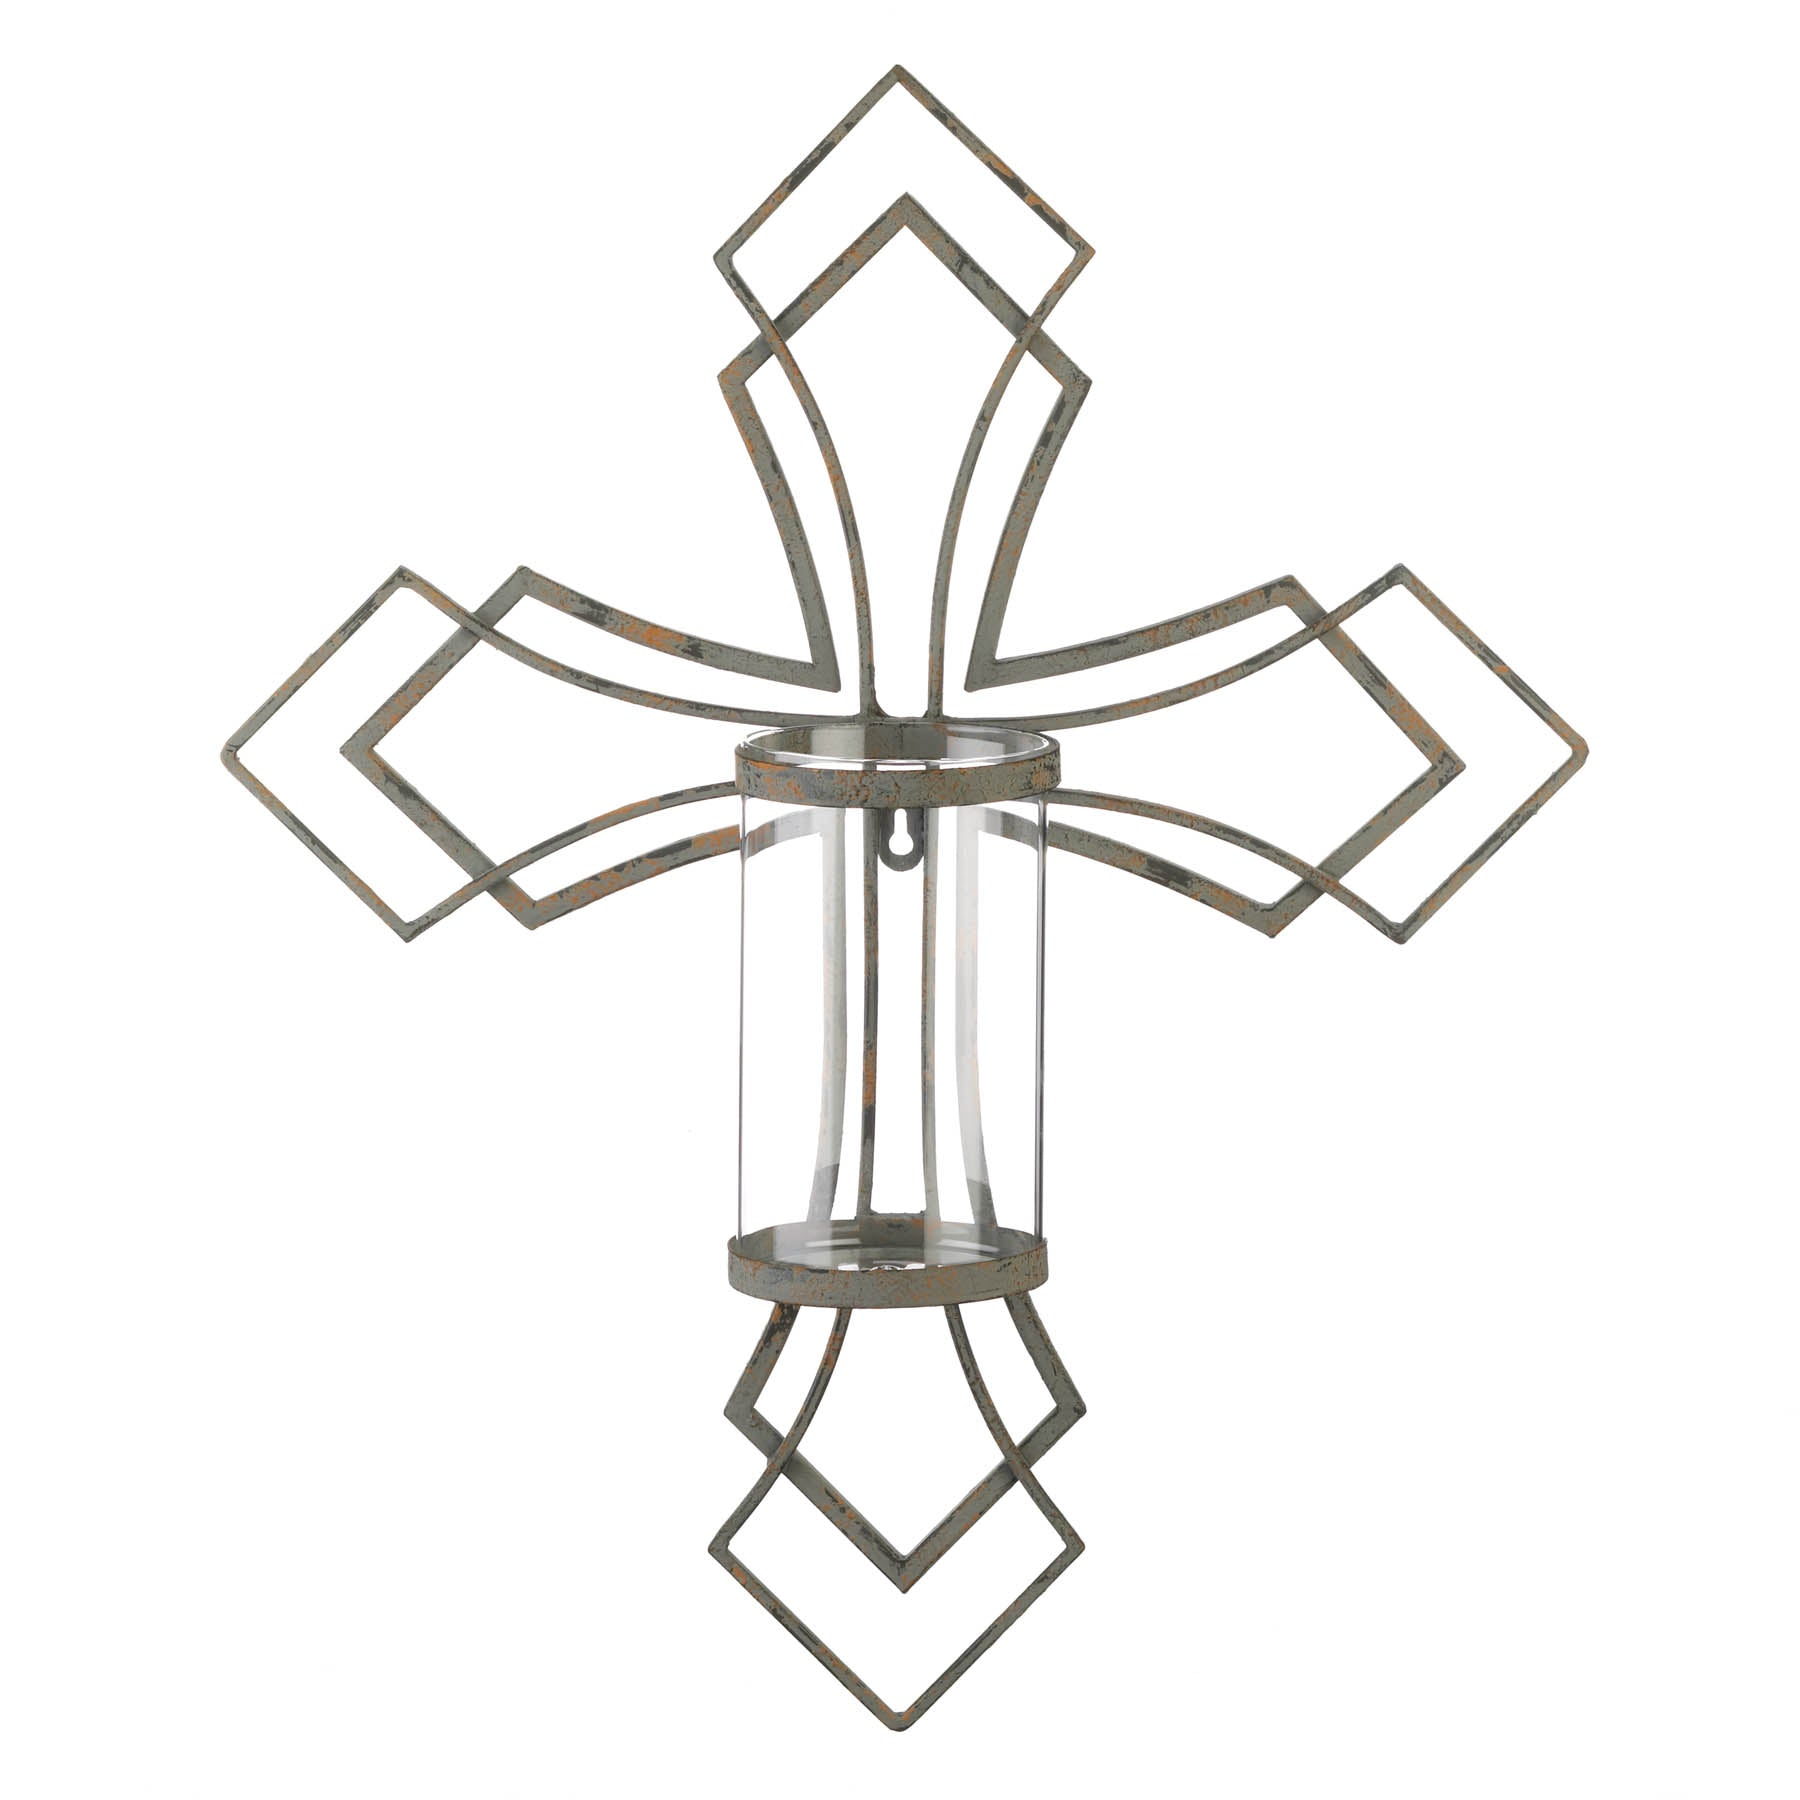 Gallery of Light Contemporary Cross Candle Wall Sconce - 10018761